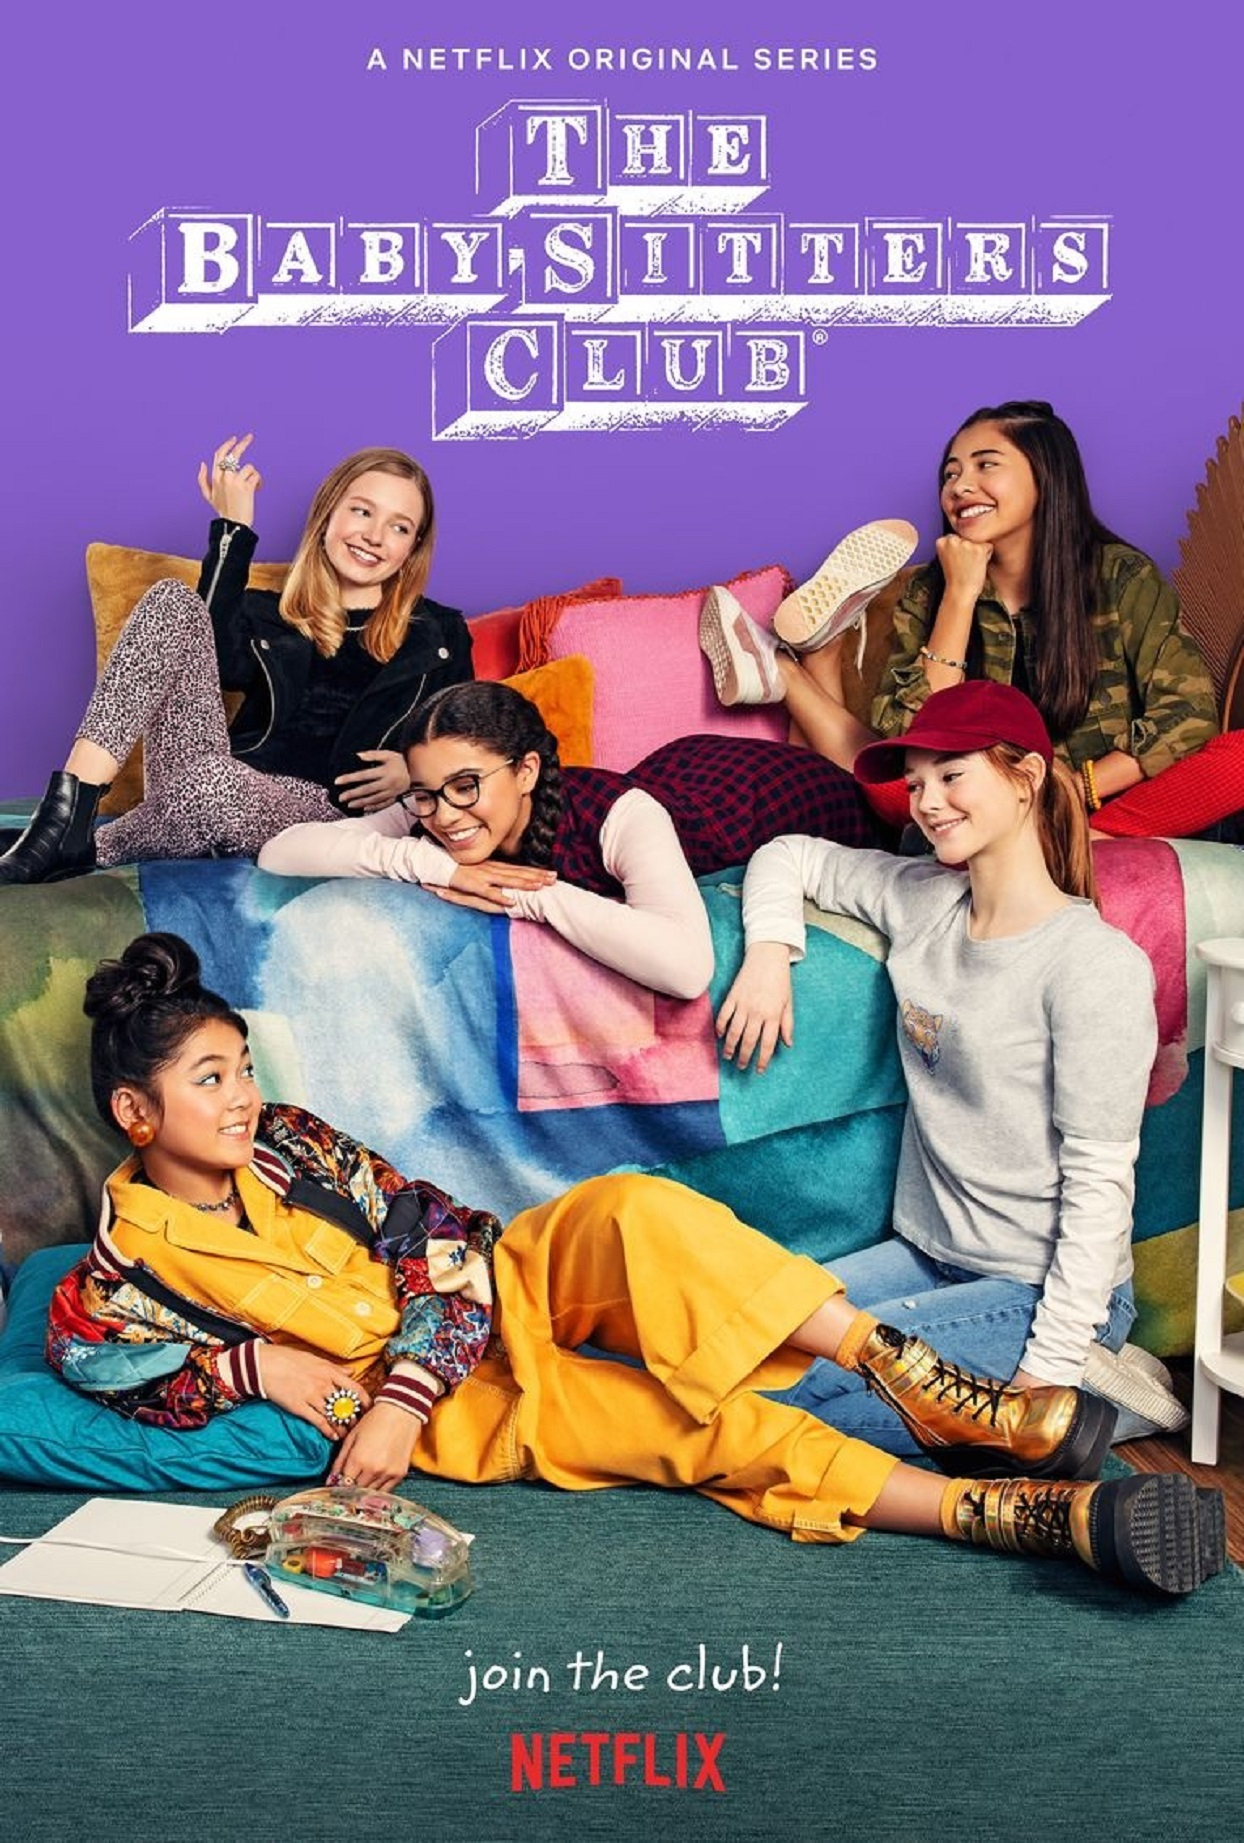 NETFLIX babysitters club cover